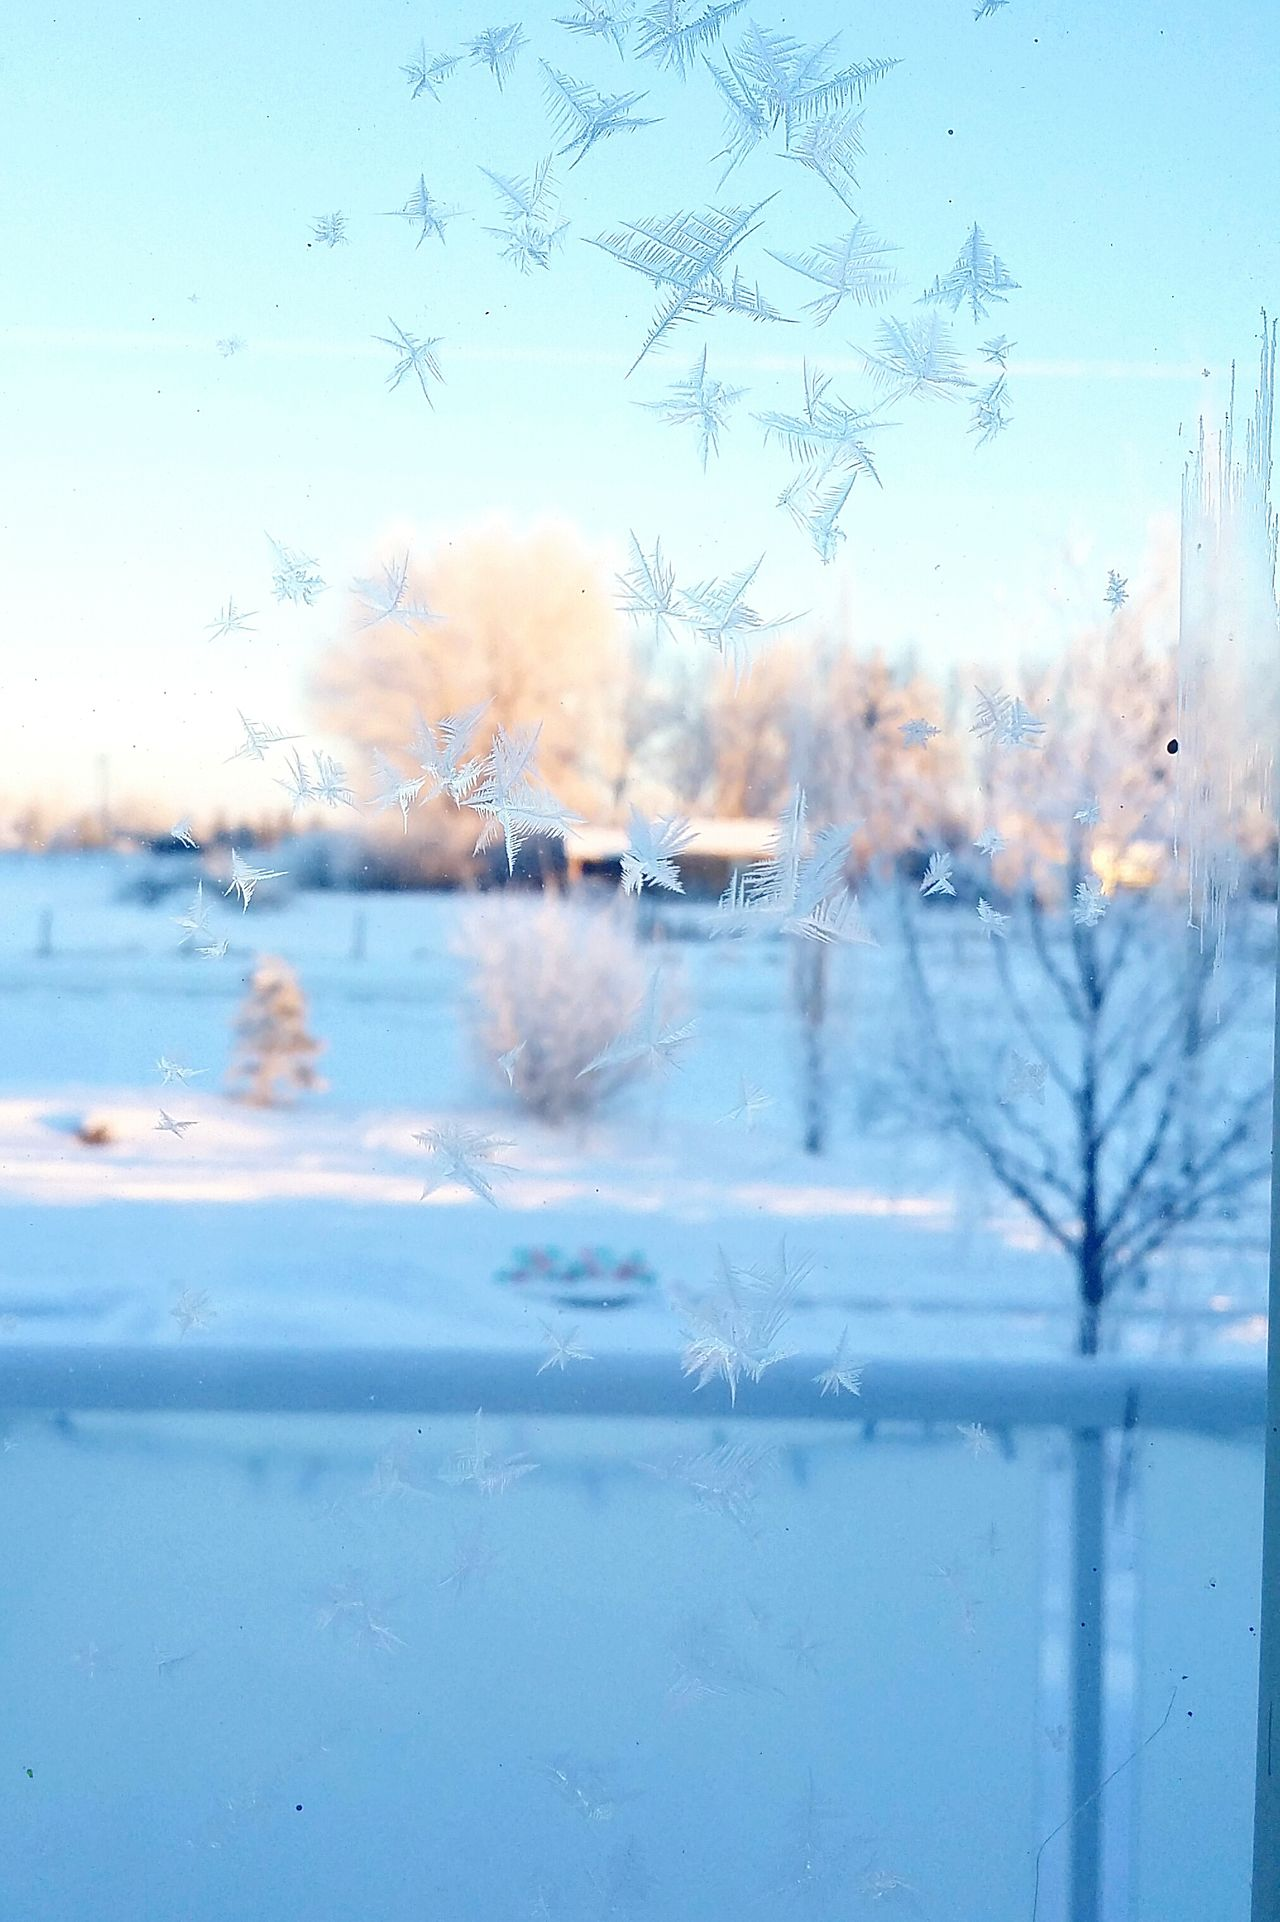 Frost Water Window Swimming Sea Day Indoors  Sky Nature Close-up No People